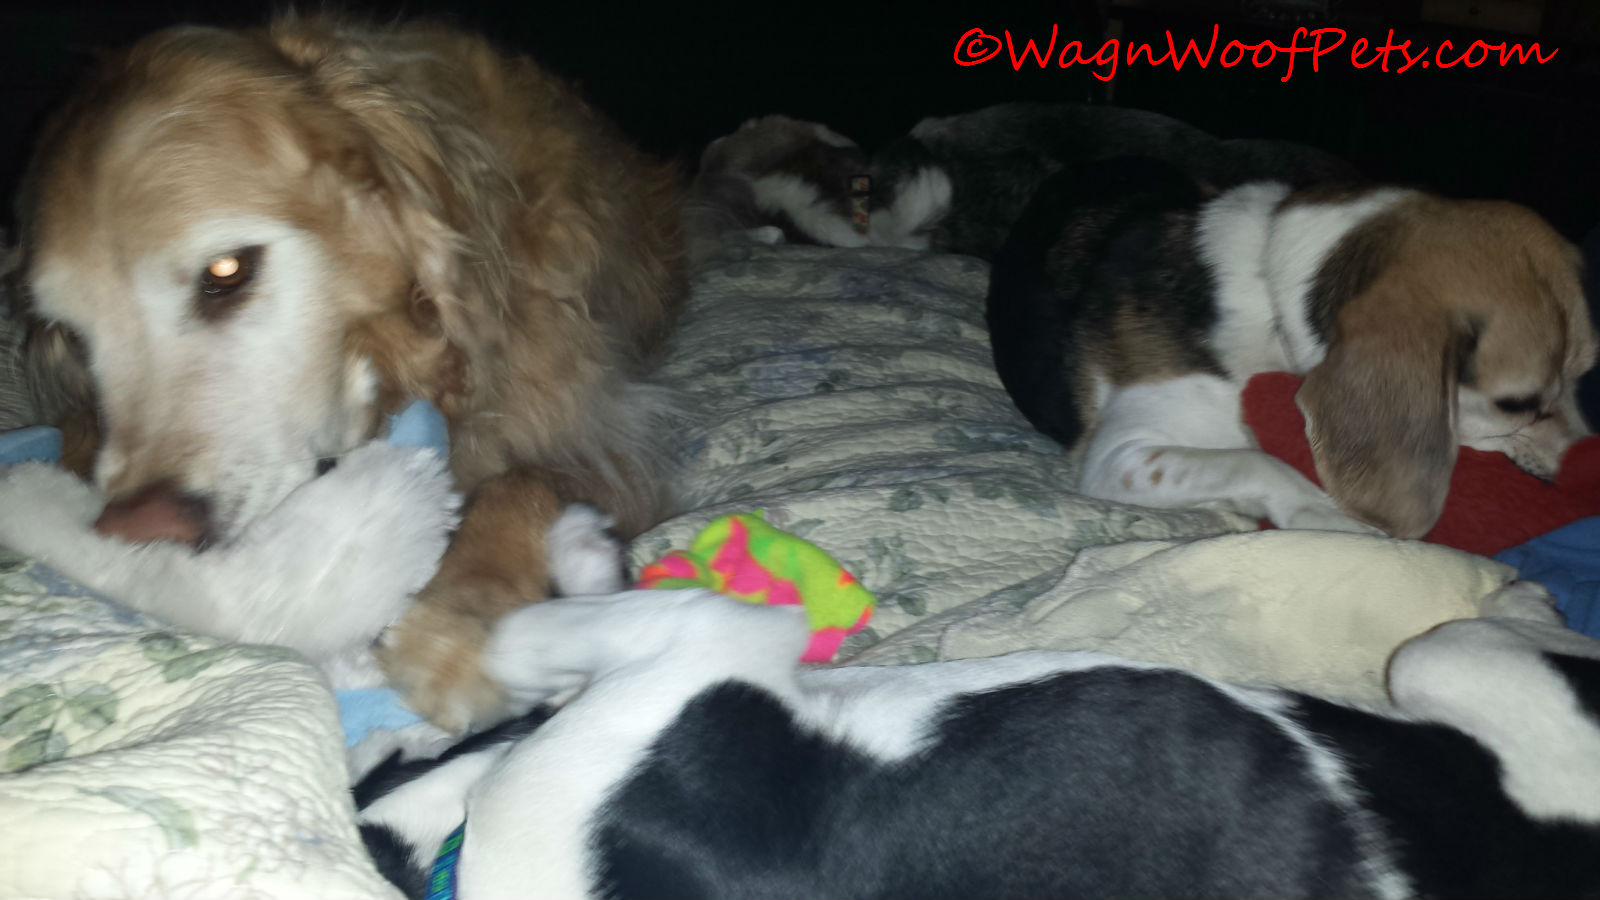 Did you notice Kobi sleeping in the background of both of the photos?